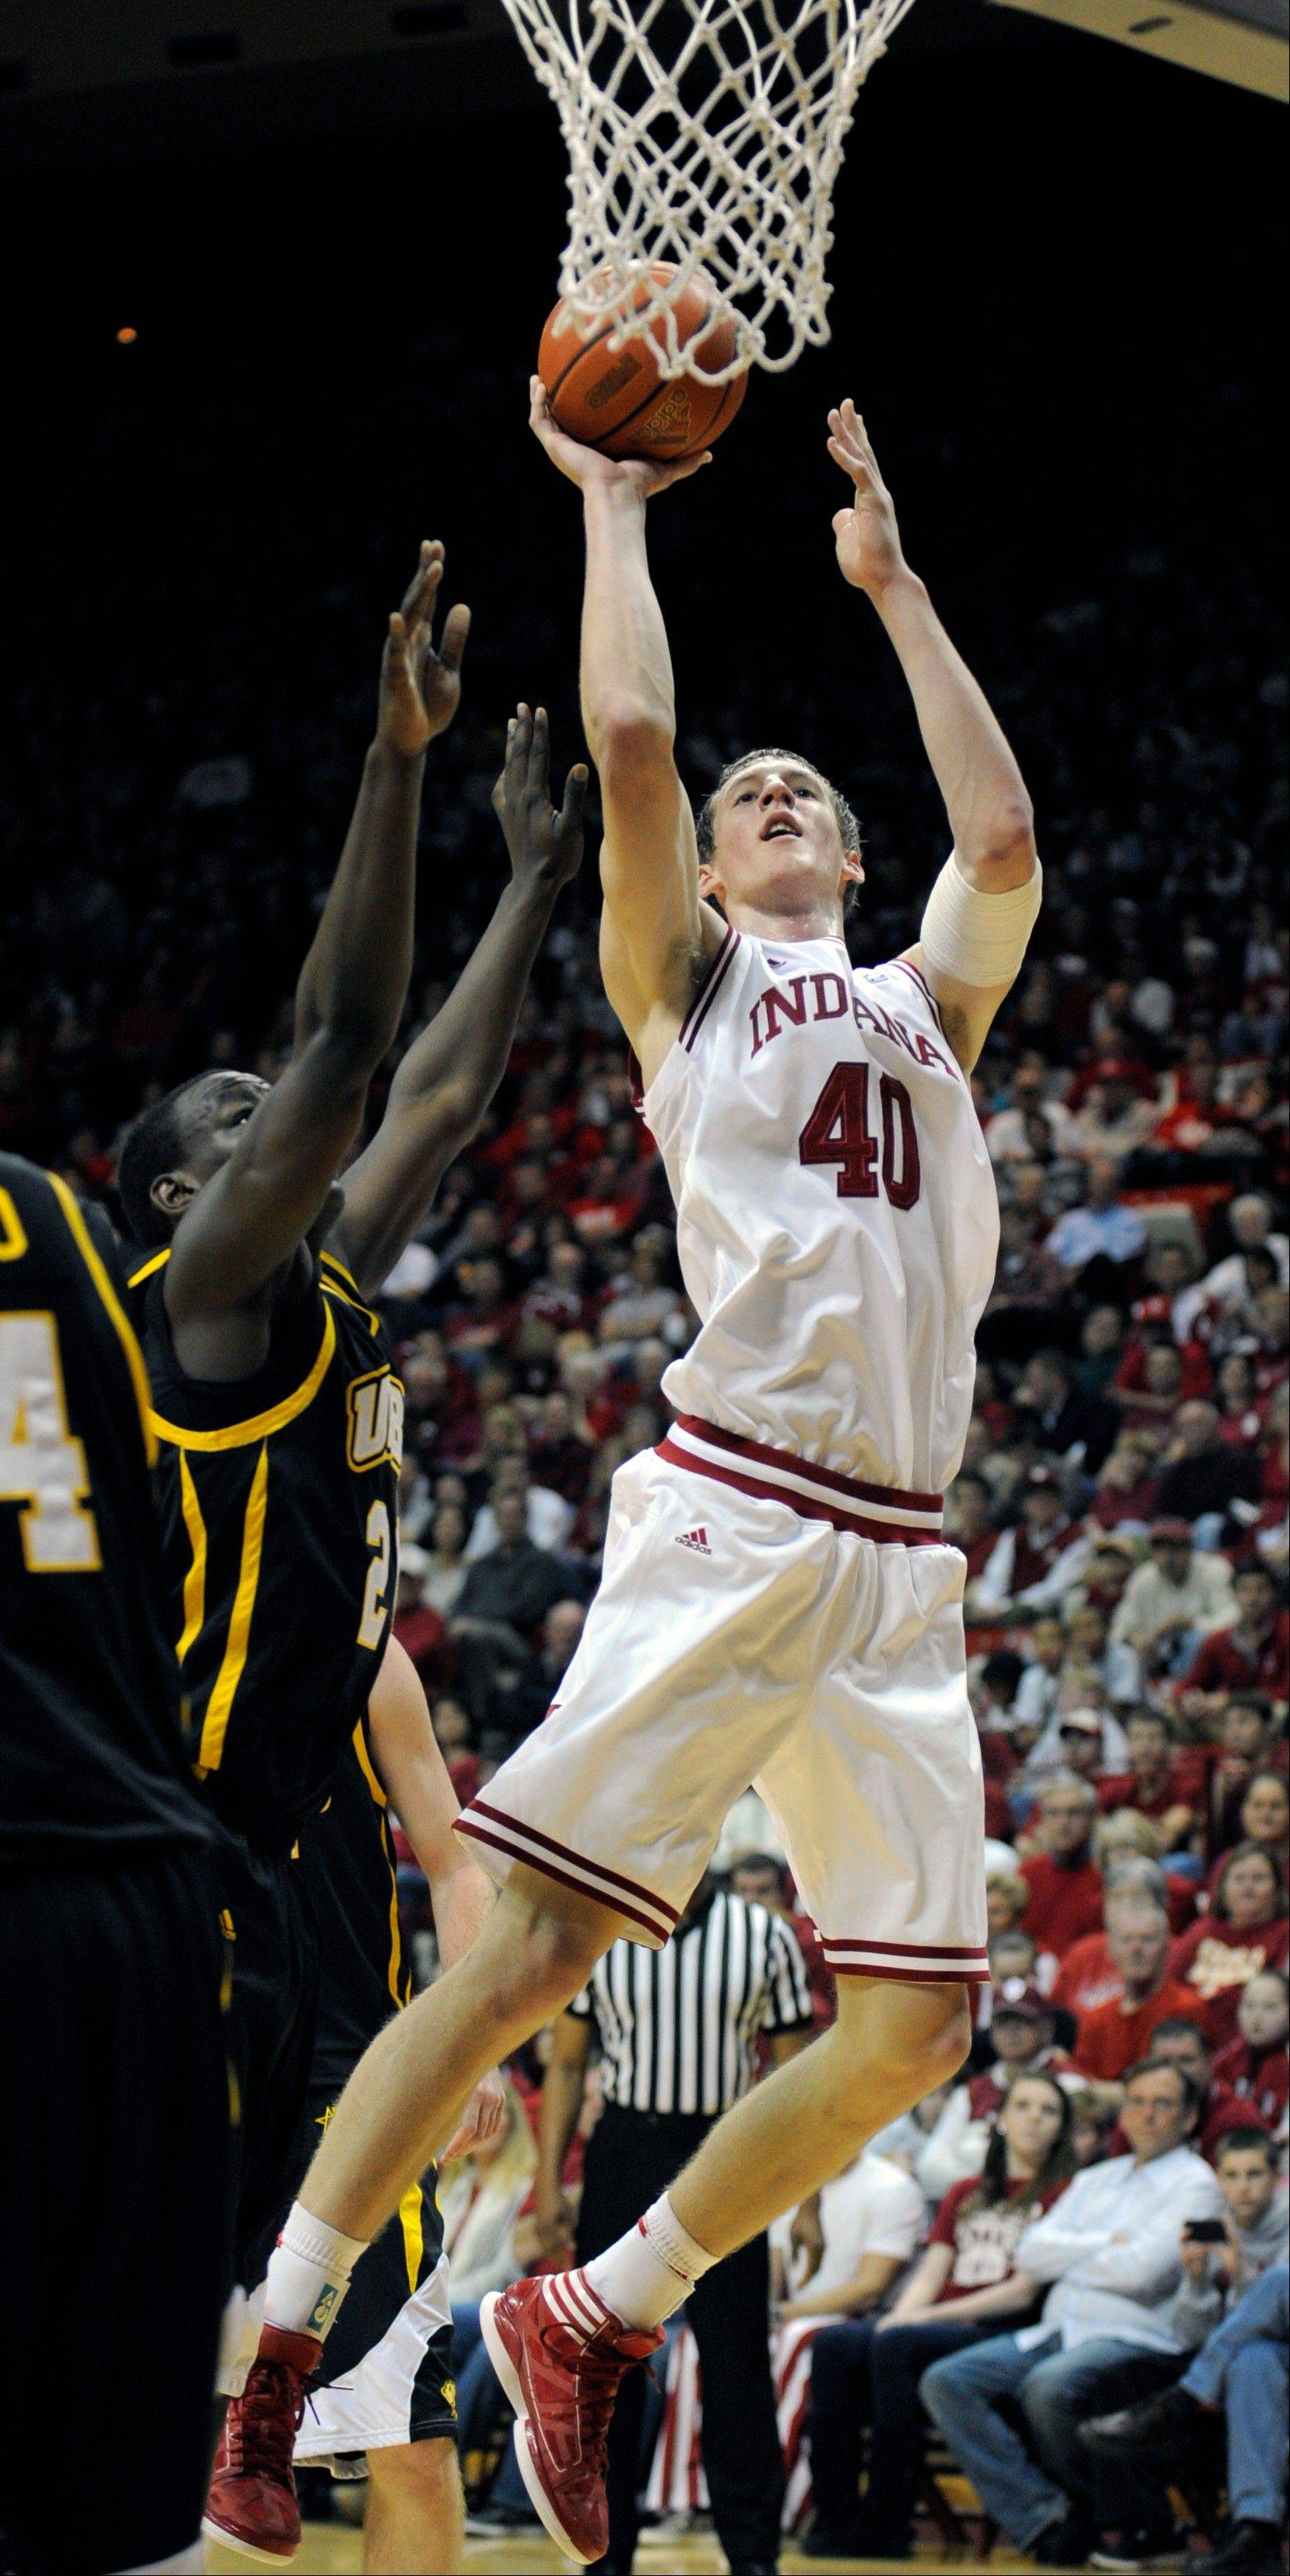 Indiana�s Cody Zeller puts up a shot over UMBC�s Jamar Wertz Thursday in Bloomington, Ind.